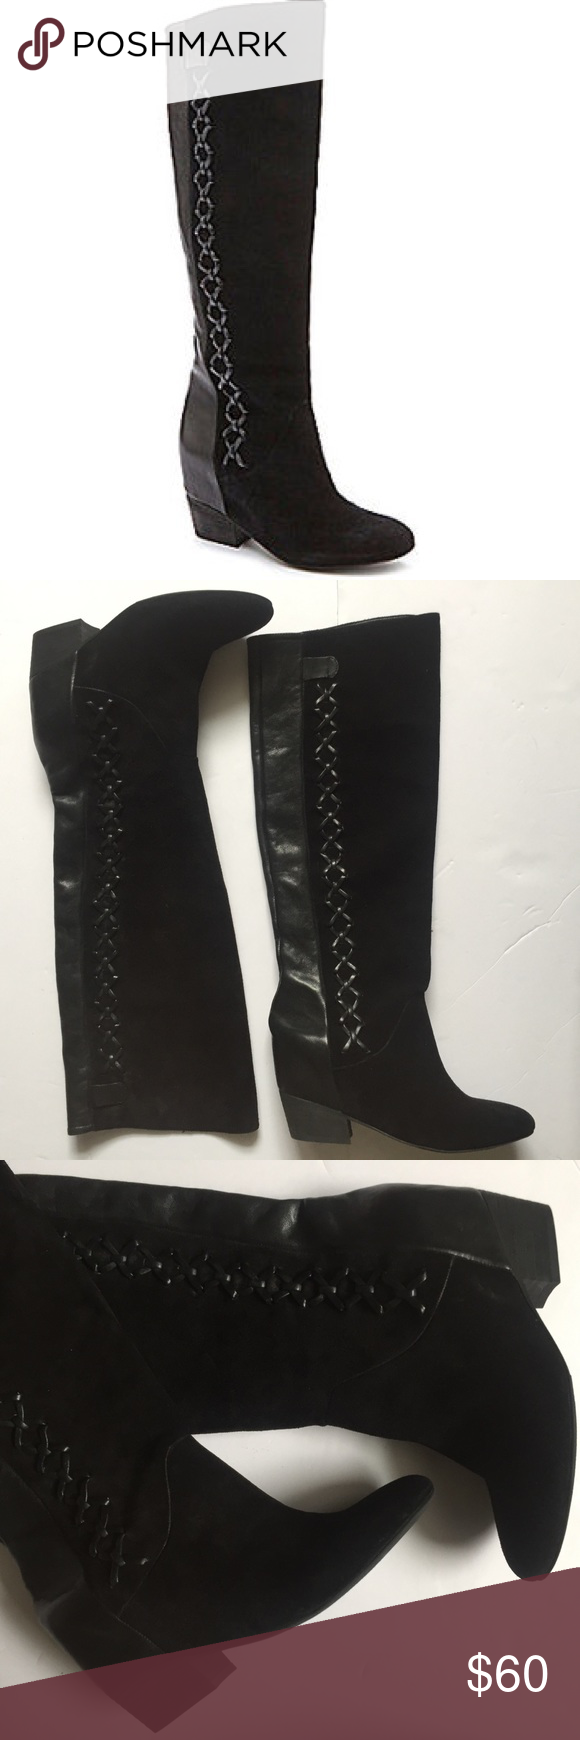 3bb7c571237 Gianni Bini suede and leather boots size 7 1/2 Gianni Bini suede and leather  boots size 7 1/2 good condition never worn! Gianni Bini Shoes Over the Knee  ...